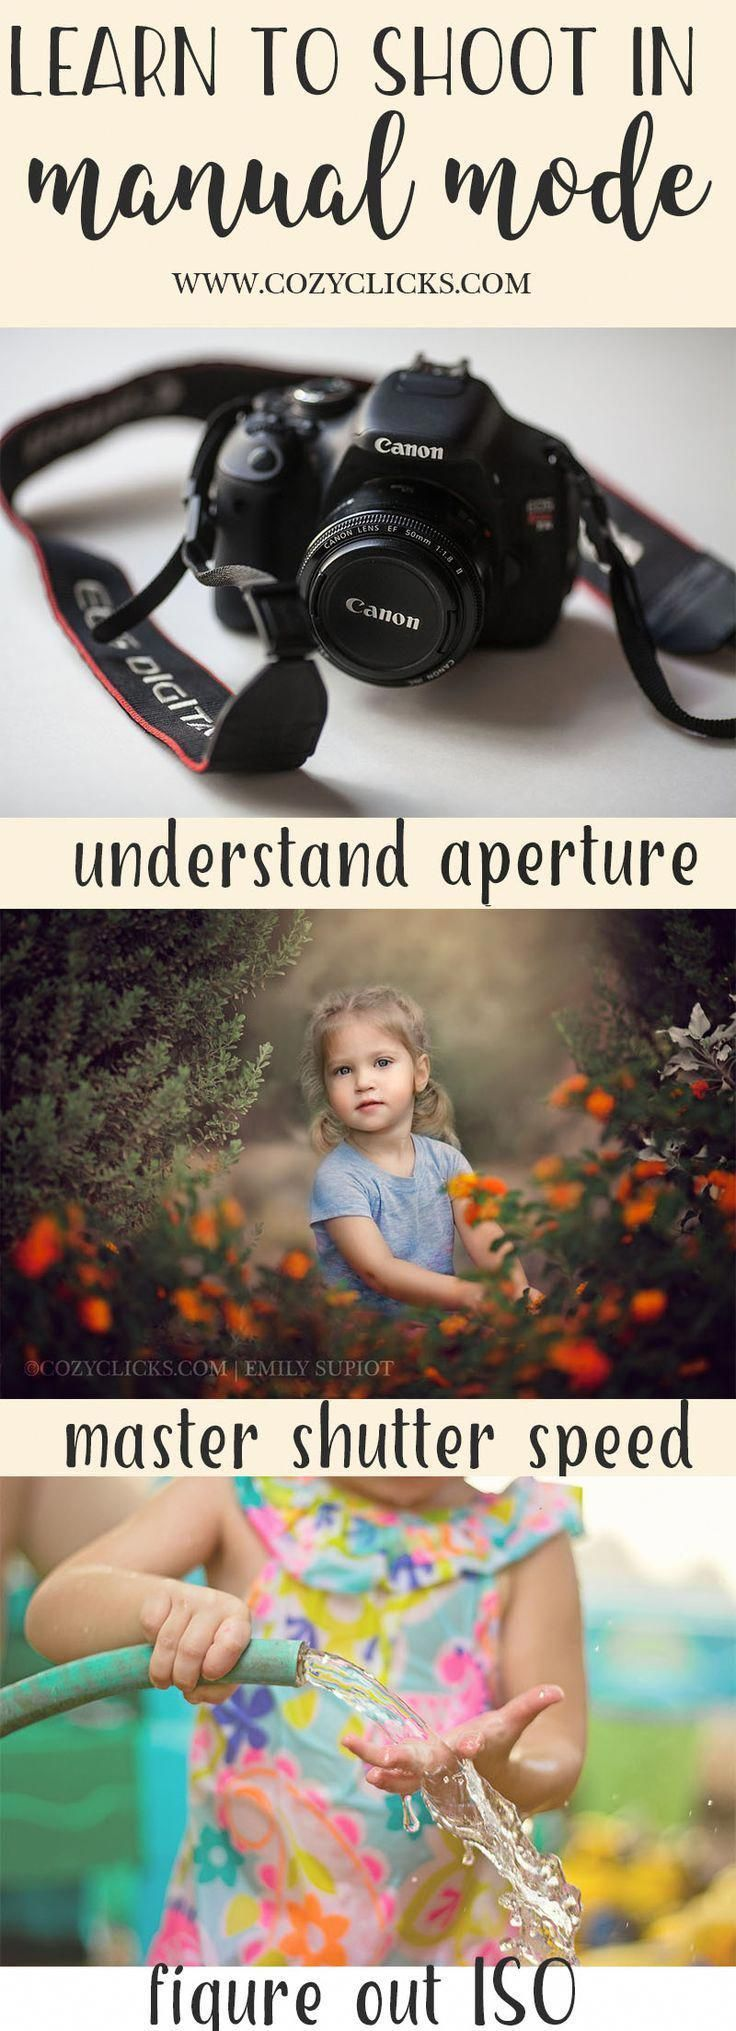 Photography Tips | If you're a new photographer, learn the easy way to shoot in manual mode right here! Photography tips focusing on shooting in manual mode. #photography101